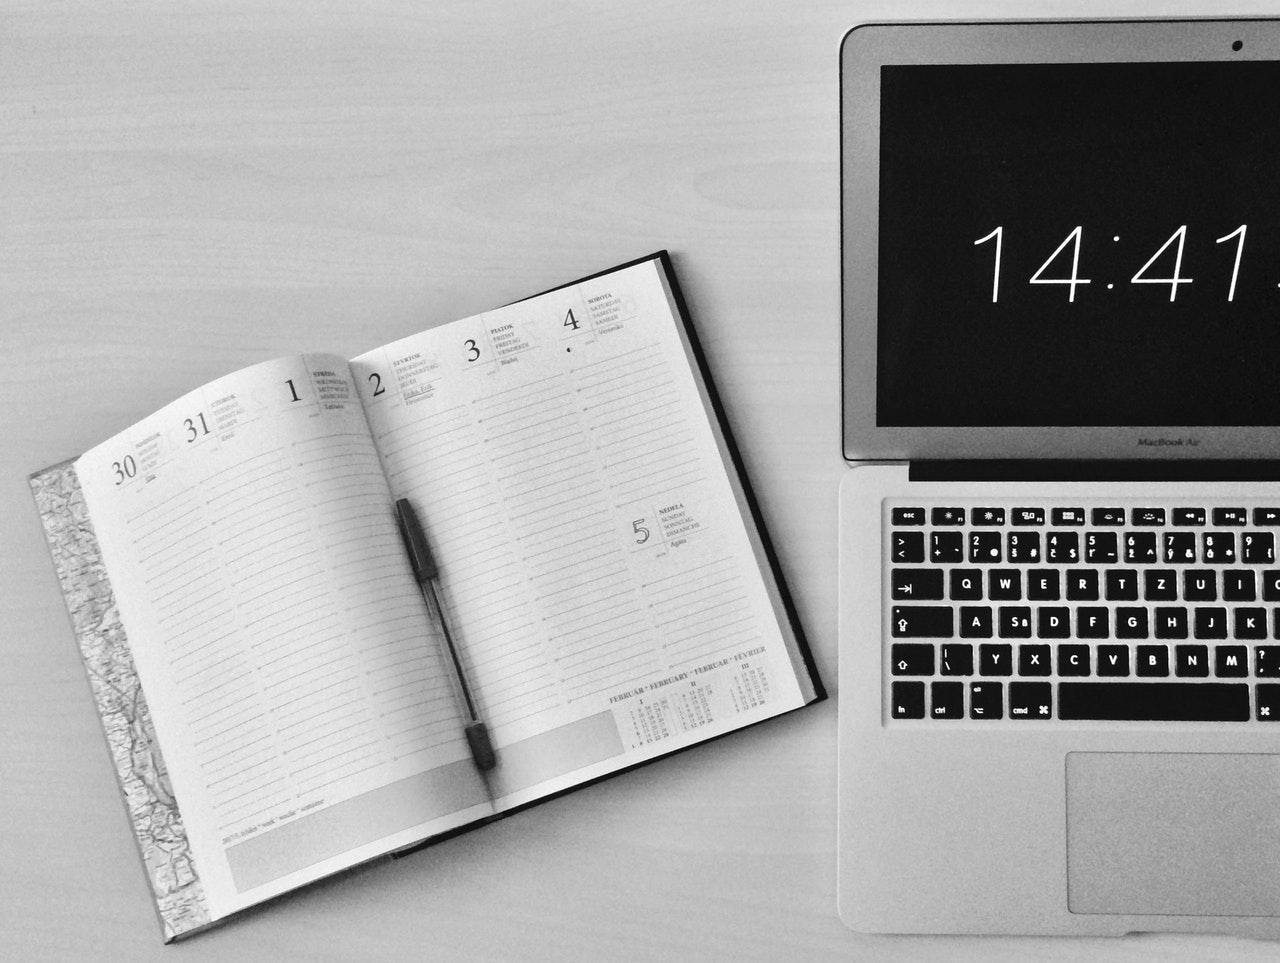 date book beside open laptop with time on screen